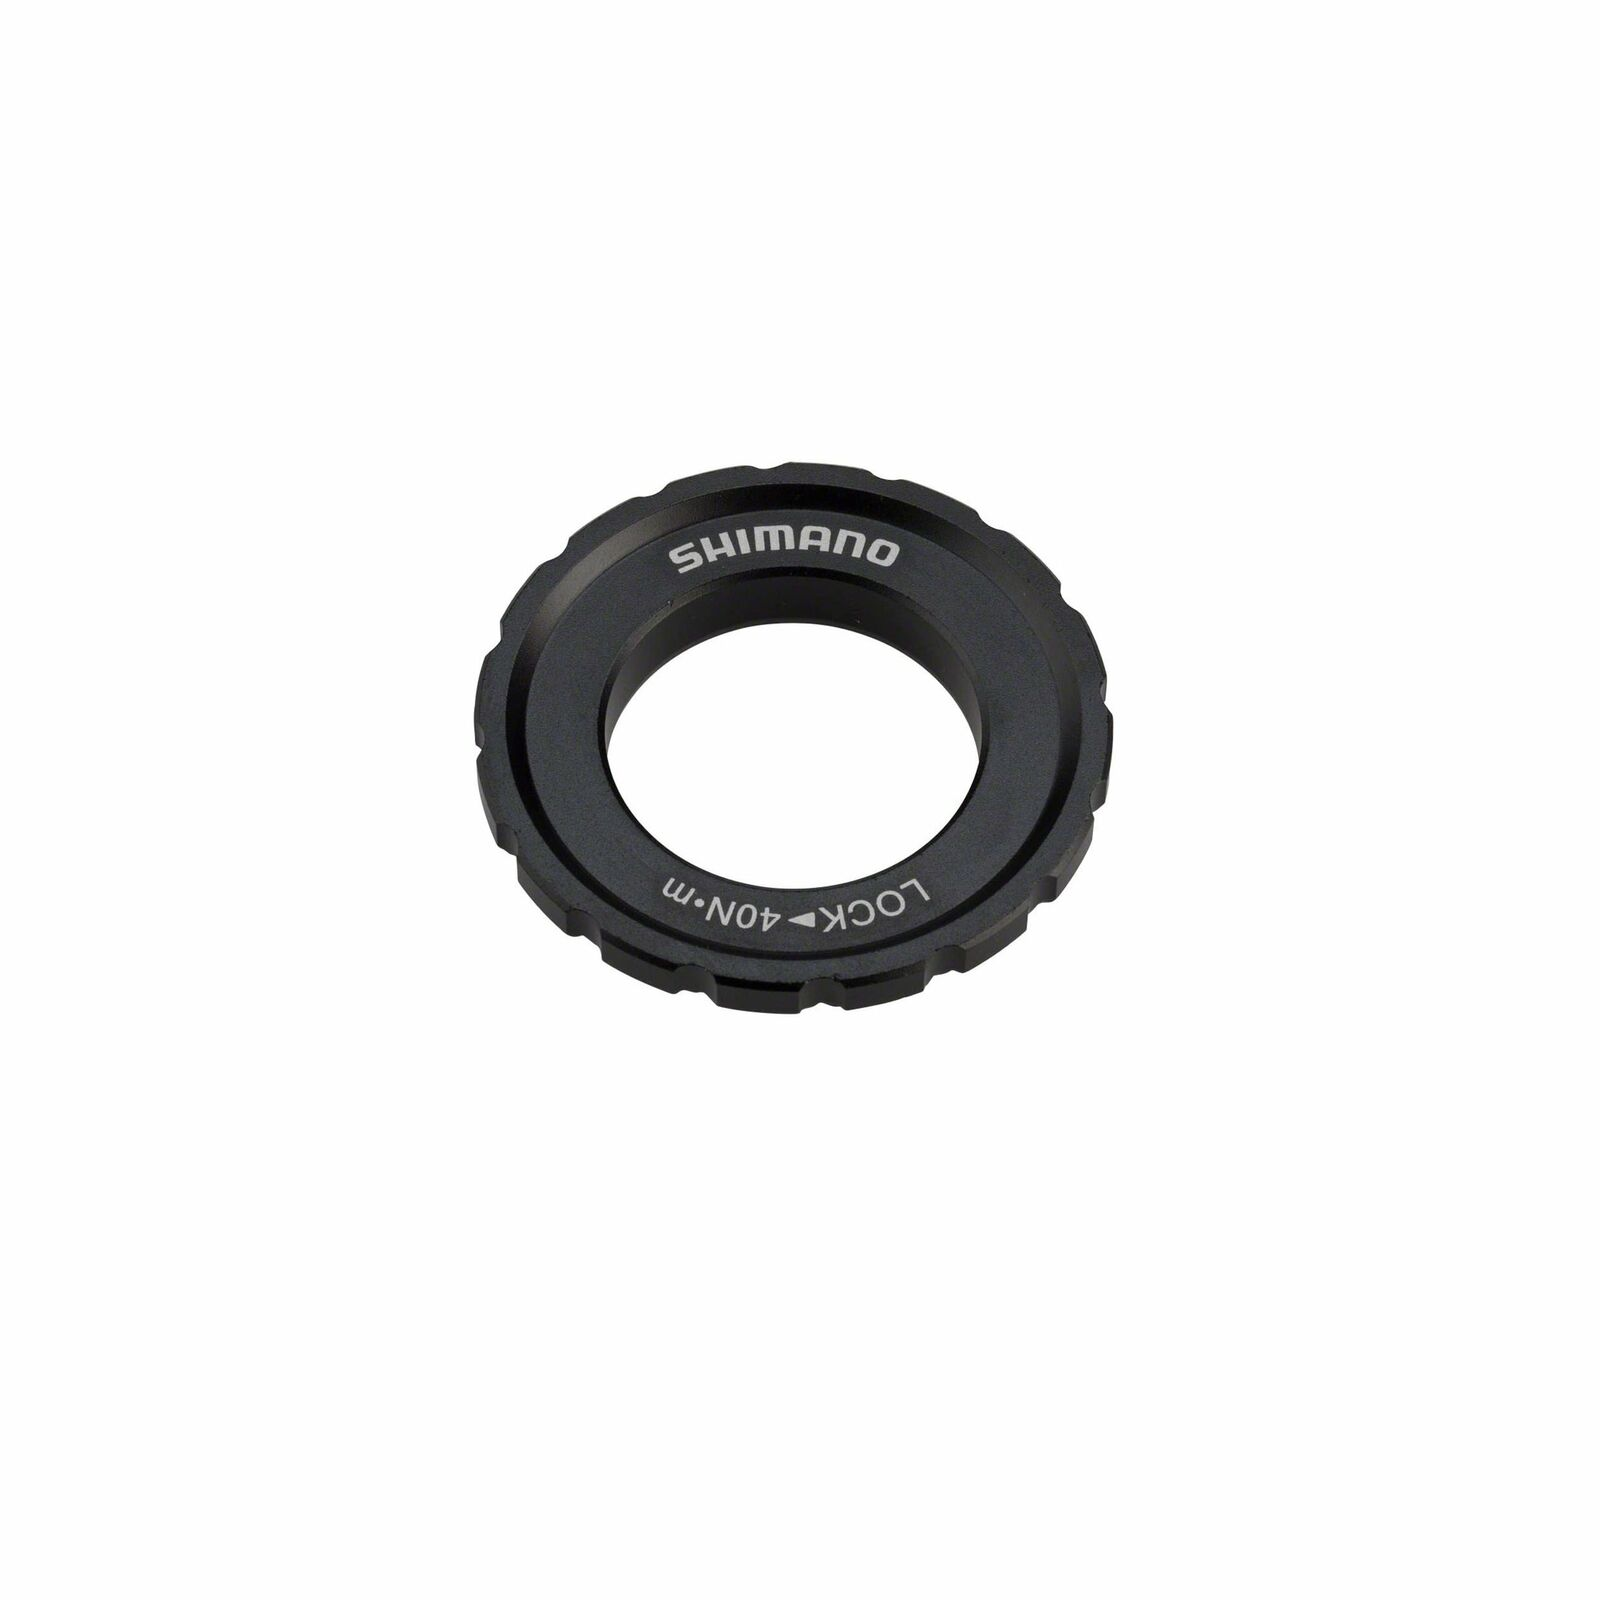 Shimano Deore XT HB-M8010-B Boost Hub Front 32 Hole NEW #1786